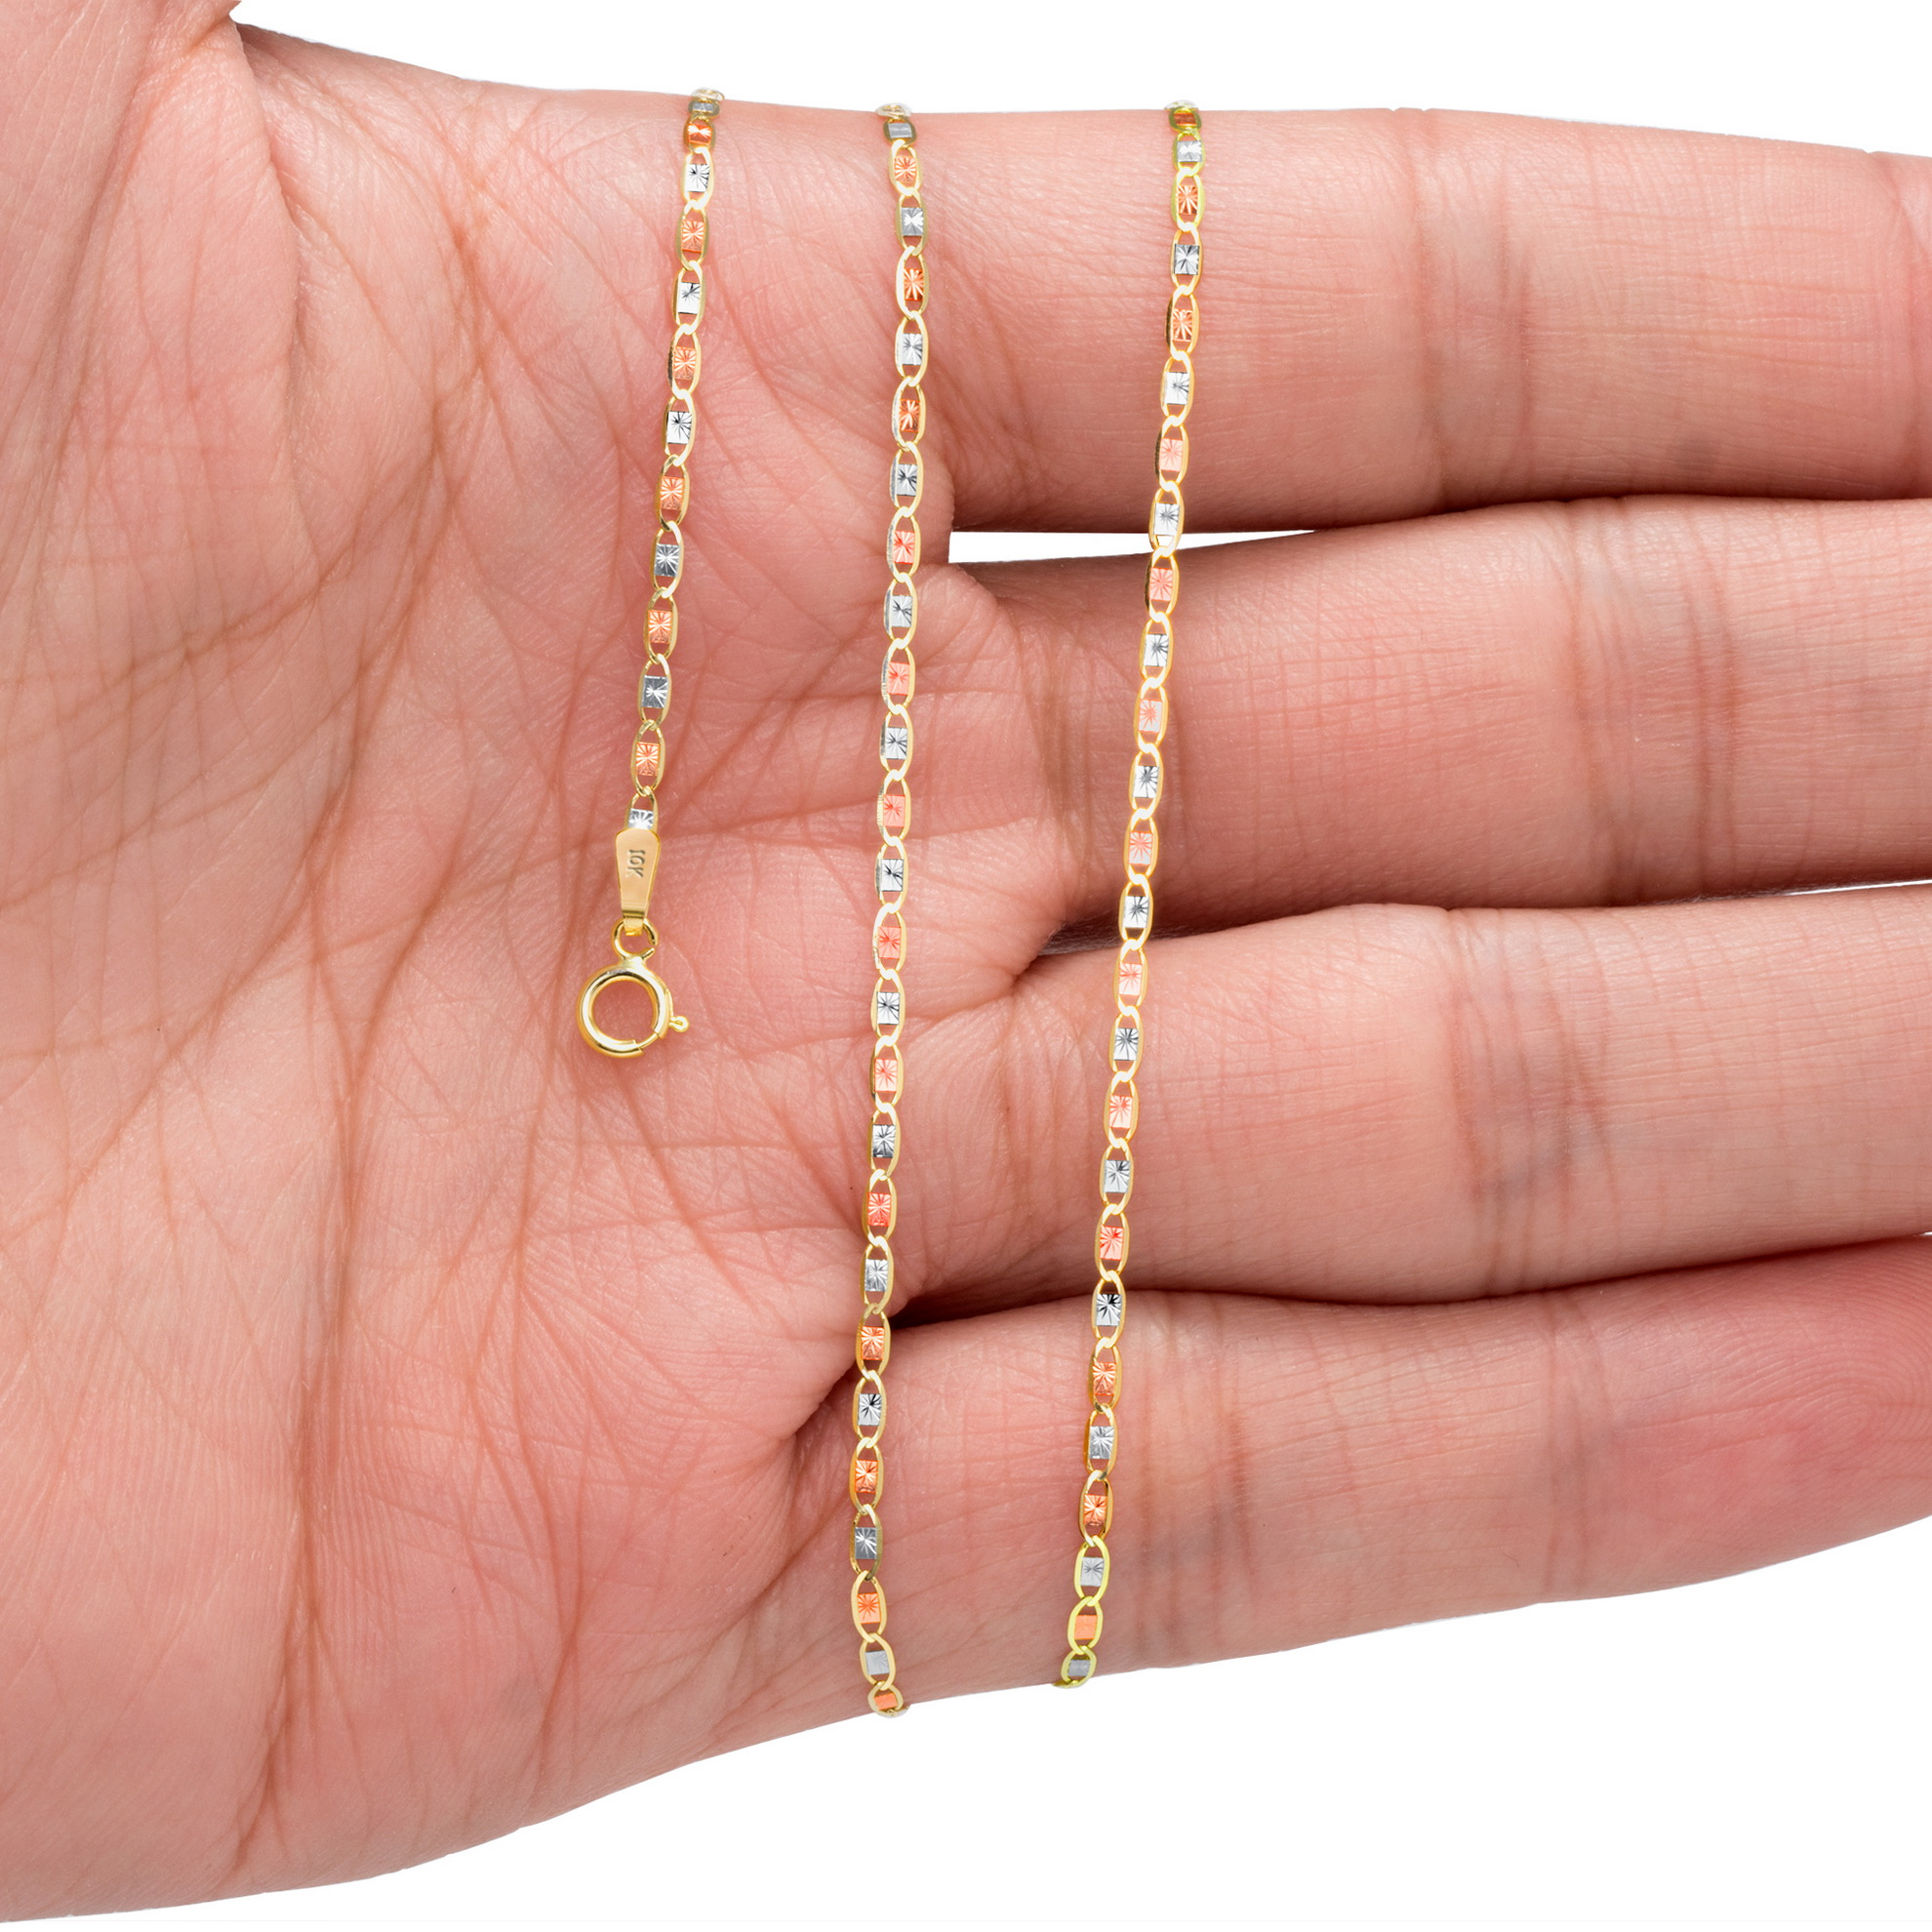 10K-Solid-Tri-Yellow-Rose-White-Gold-Thin-1-5mm-Valentino-Chain-Necklace-16-034-24-034 thumbnail 13